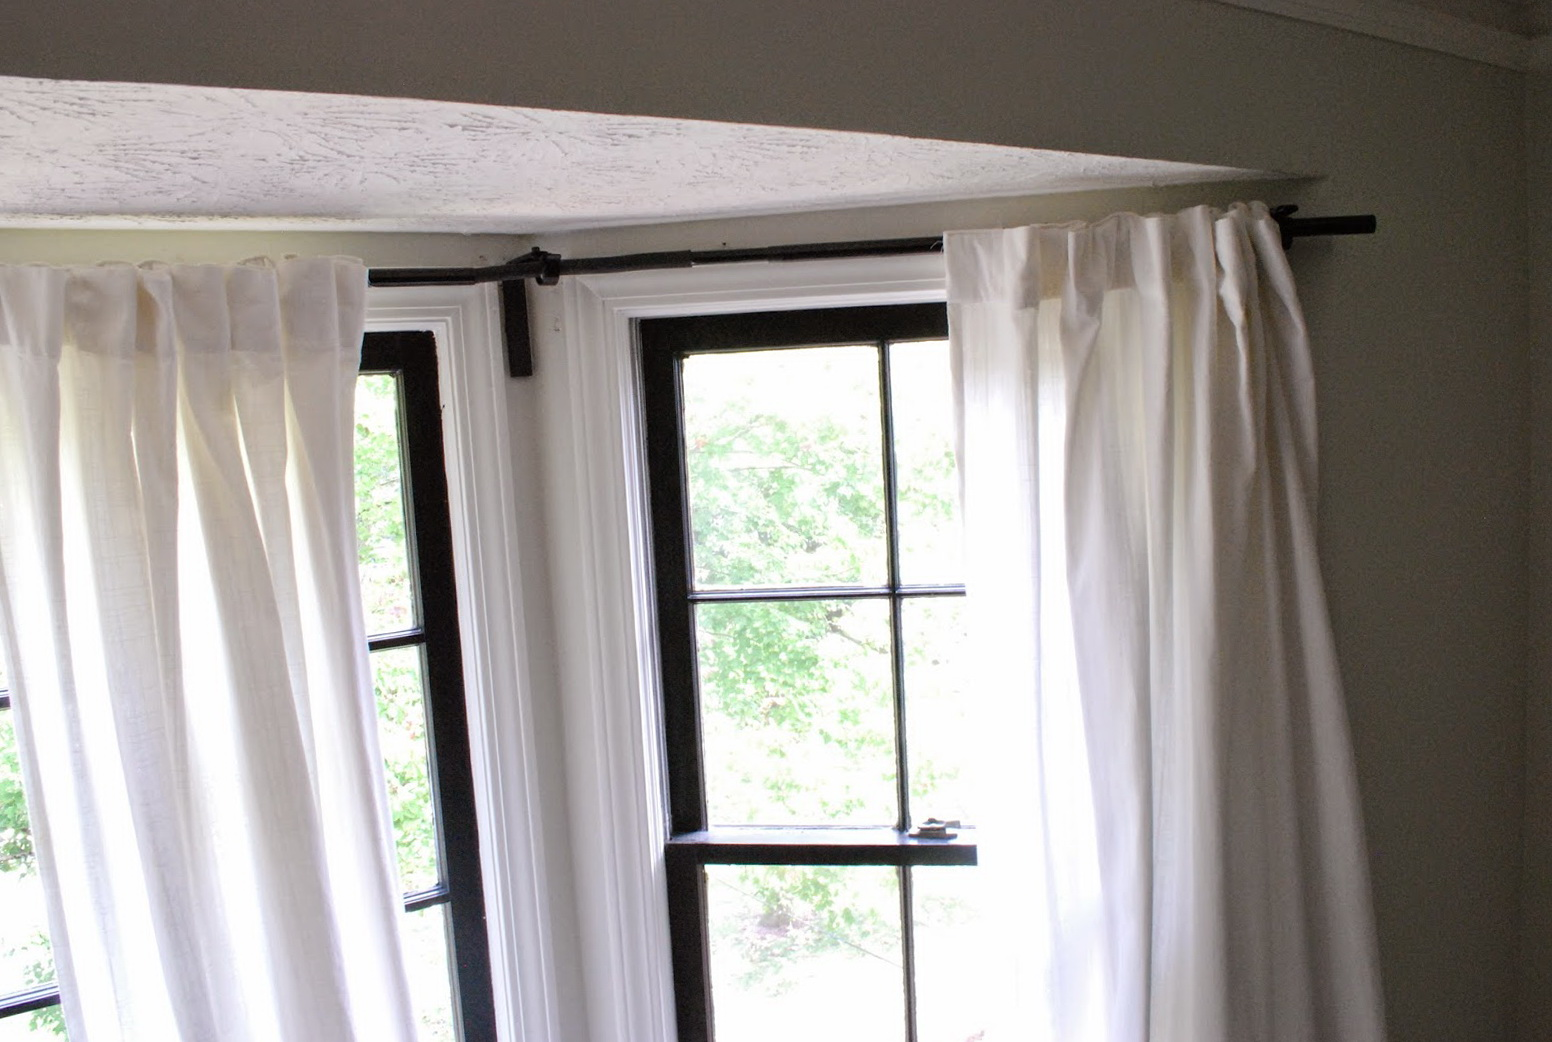 Curtain Rods For Bay Windows Ikea Home Design Ideas